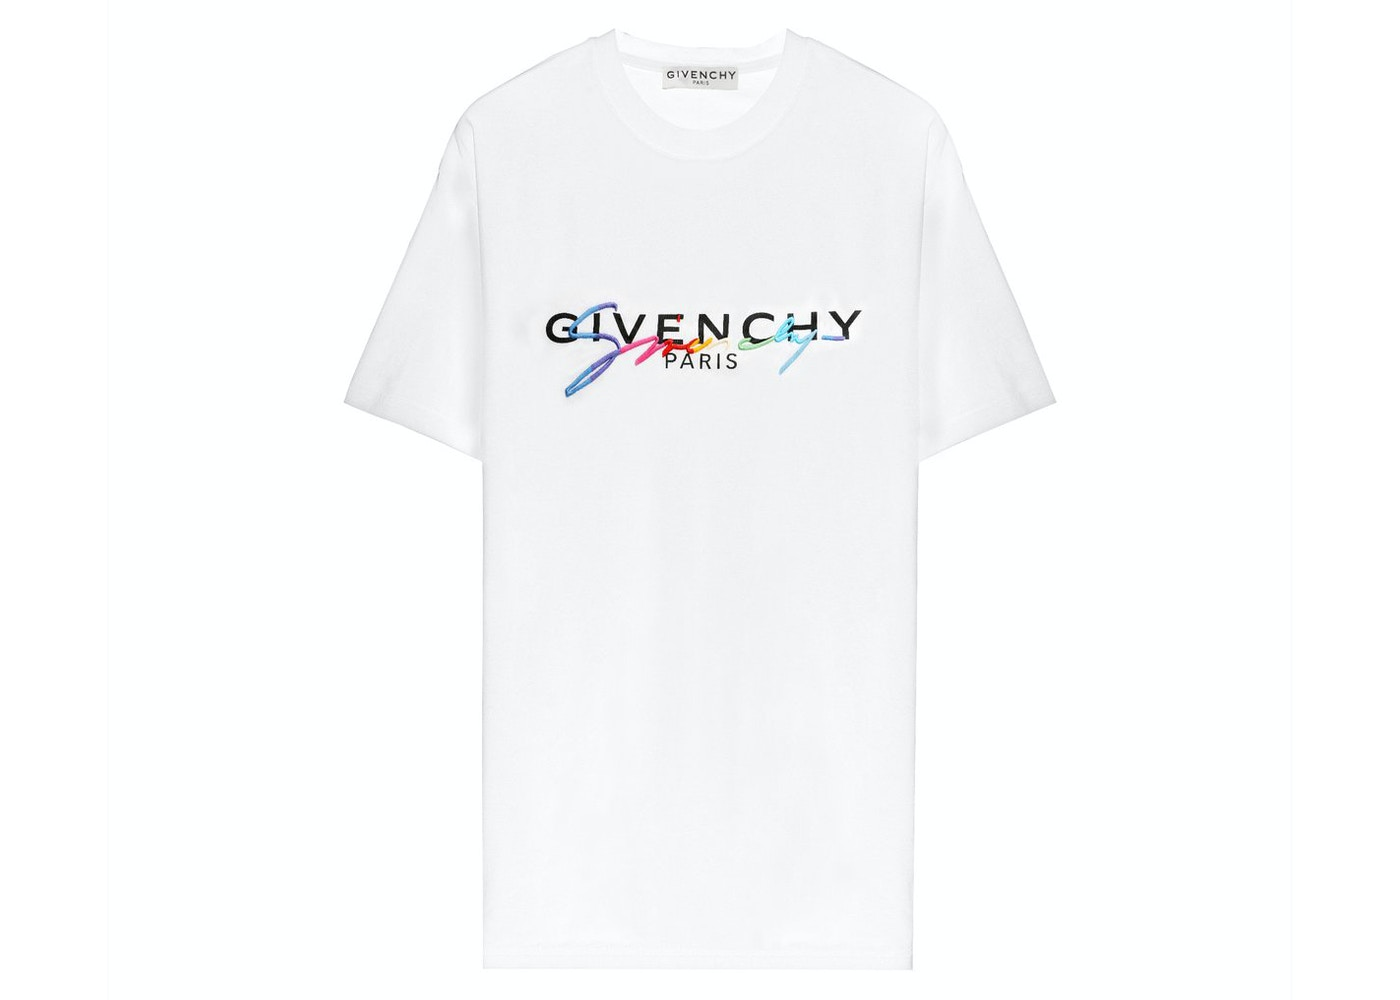 Givenchy Paris Embroidered Logo T shirt White   SS20